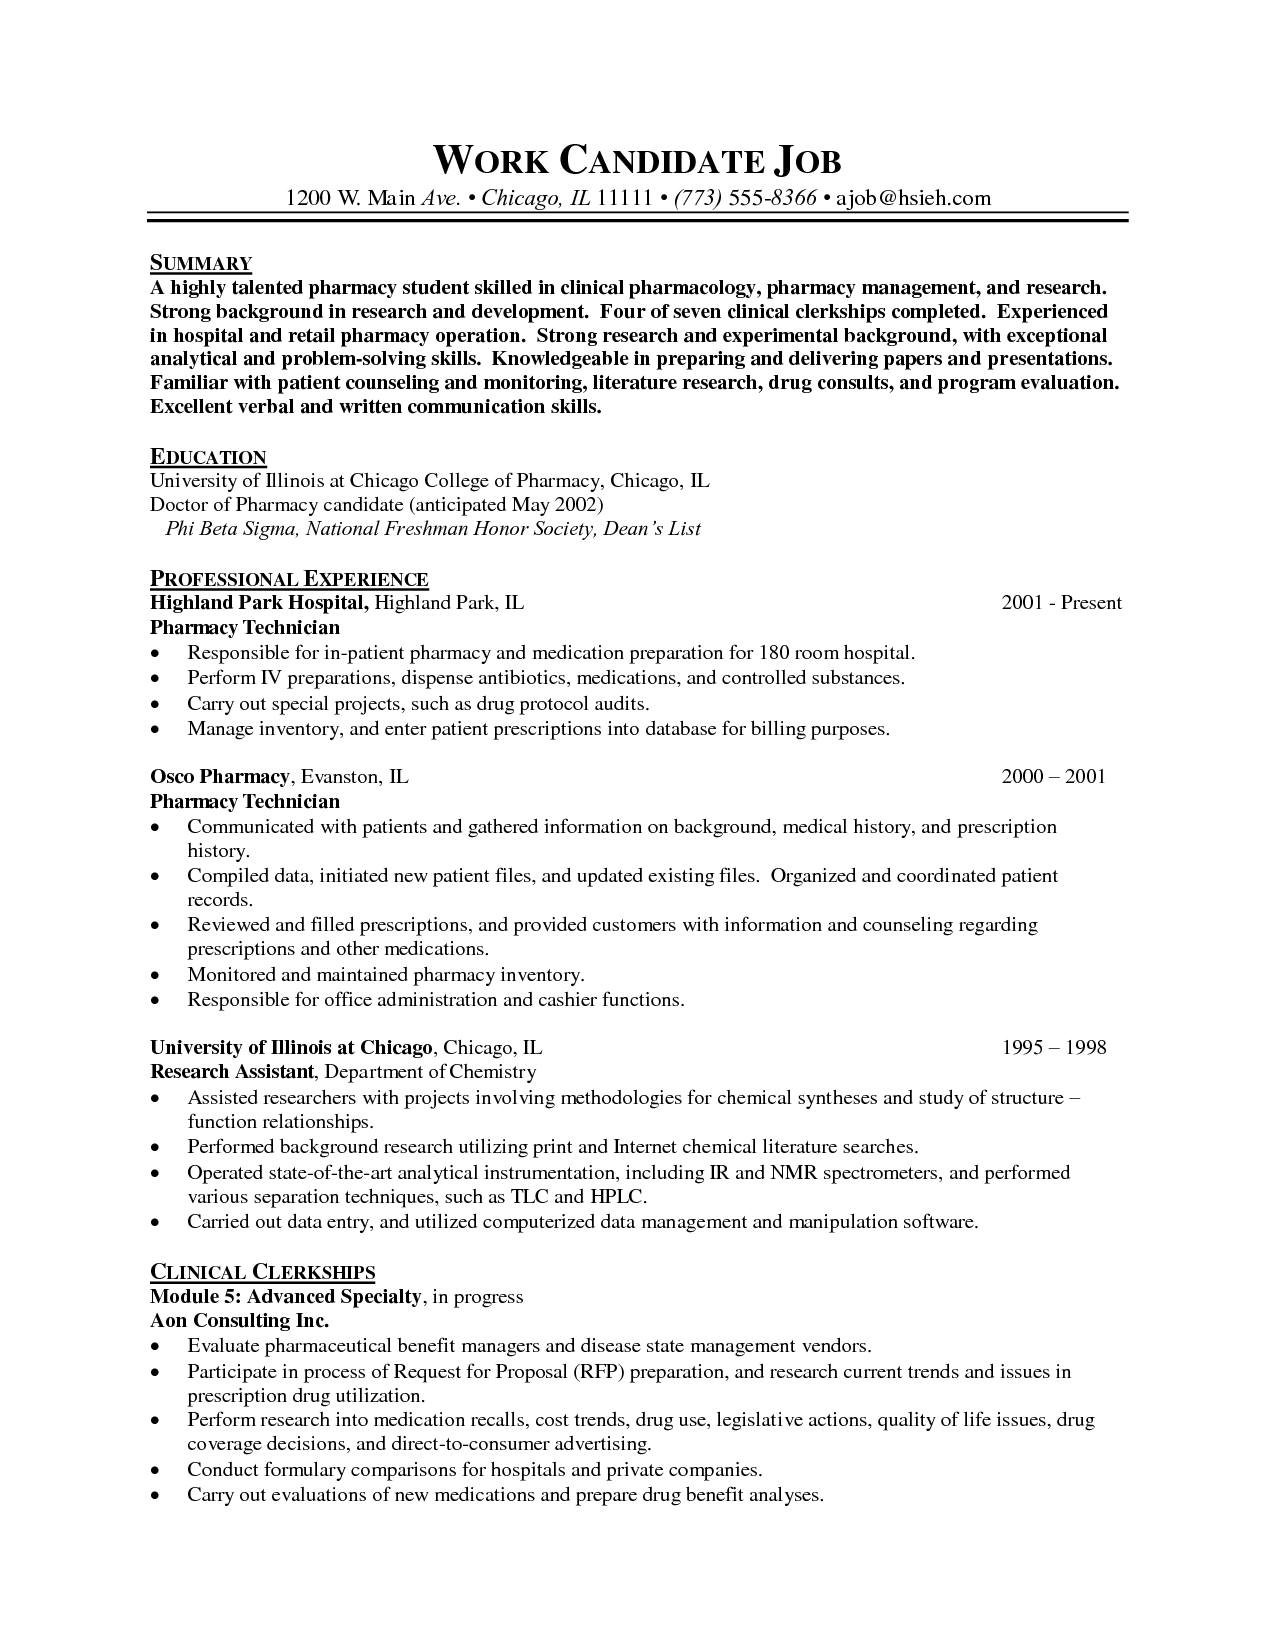 professional resume cover letter sample get instant risk free access to the full - Full Resume Sample